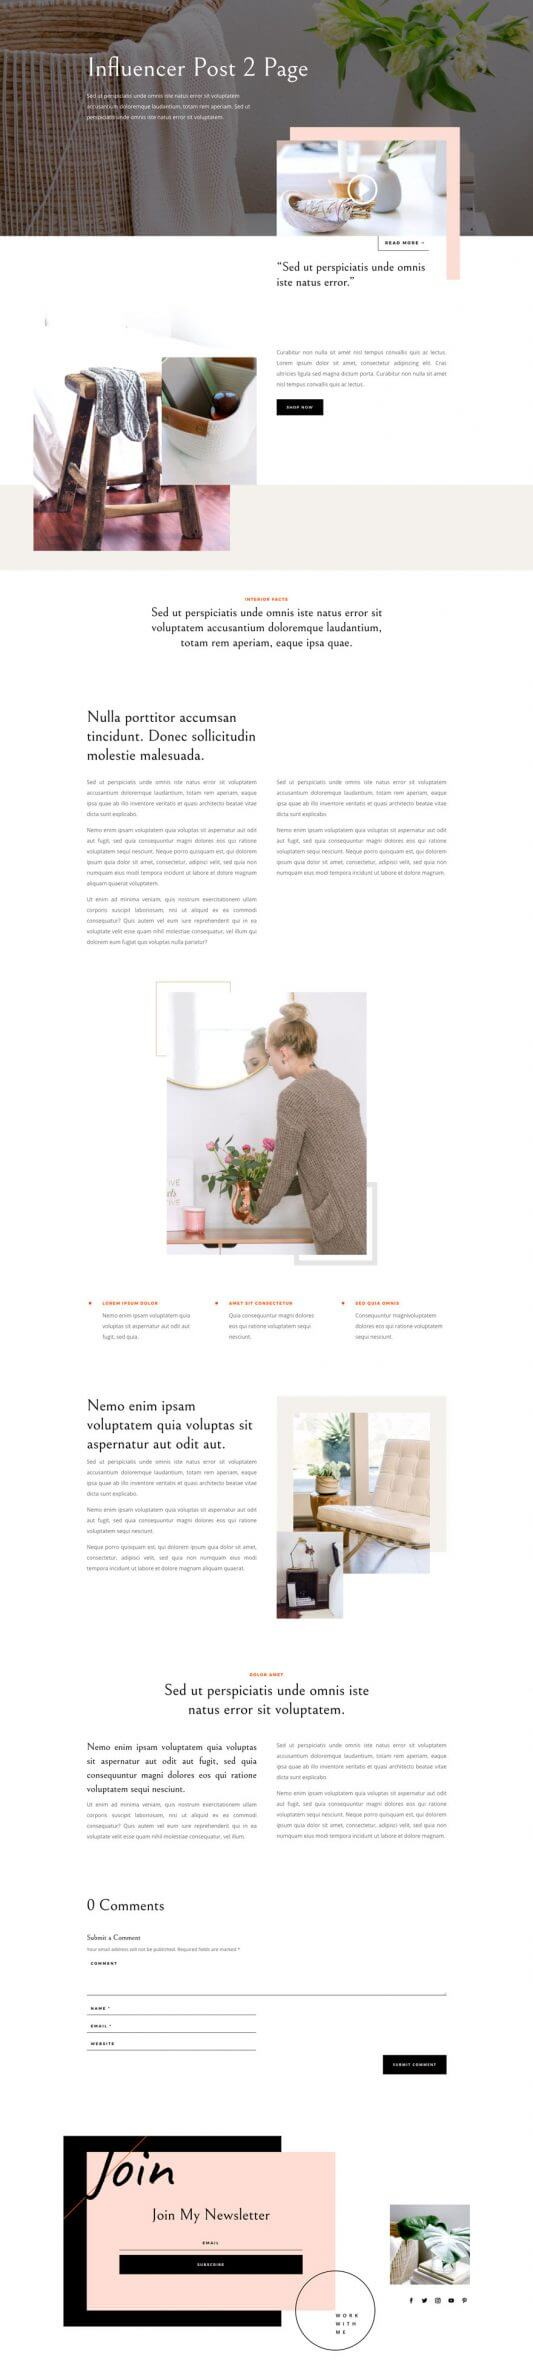 Plantilla WordPress para Influencers